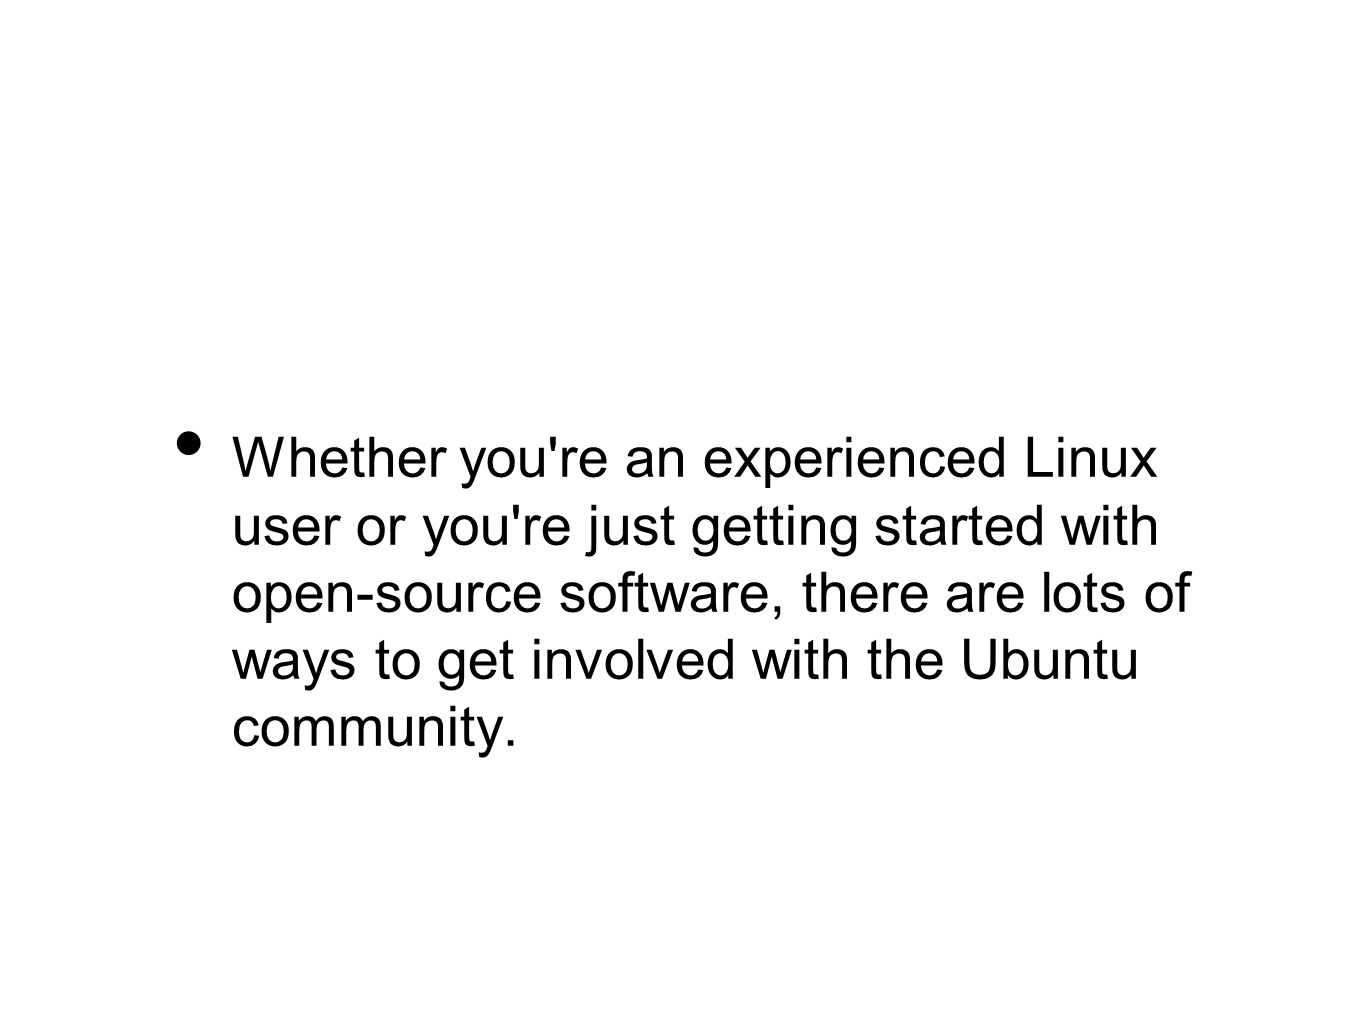 Whether you re an experienced Linux user or you re just getting started with open-source software, there are lots of ways to get involved with the Ubuntu community.